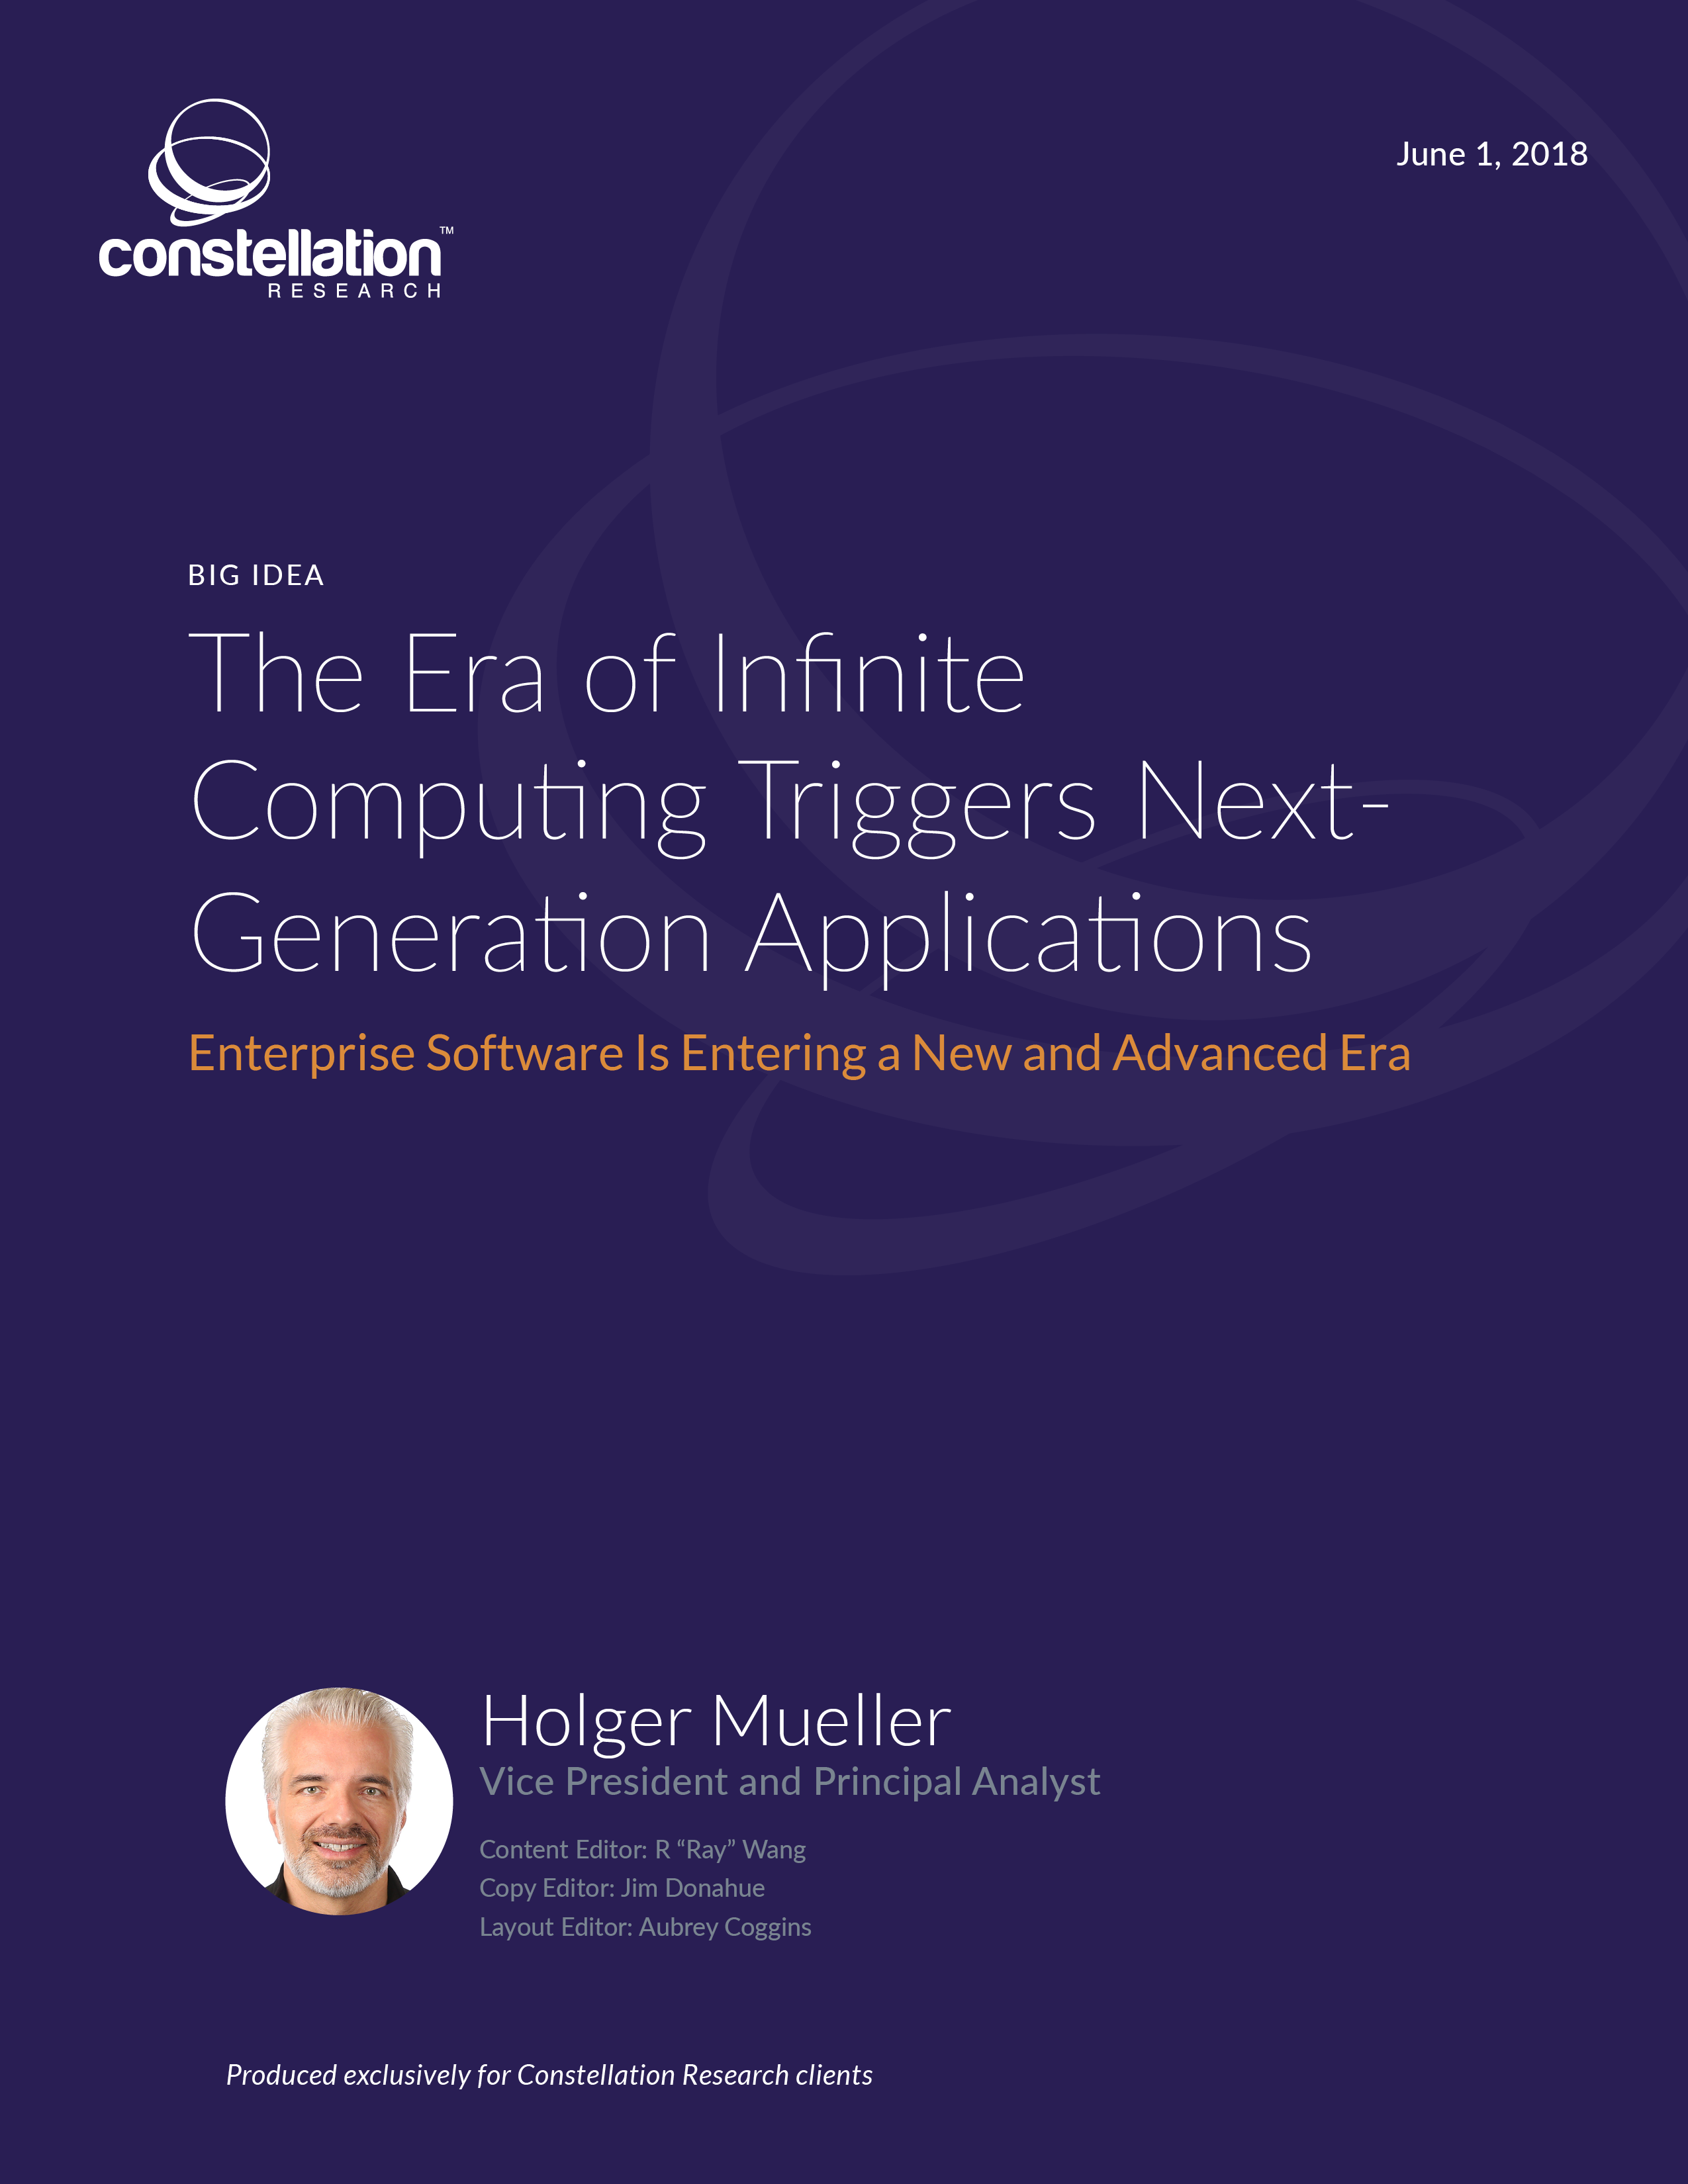 The Era of Infinite Computing Triggers Next-Generation Applications